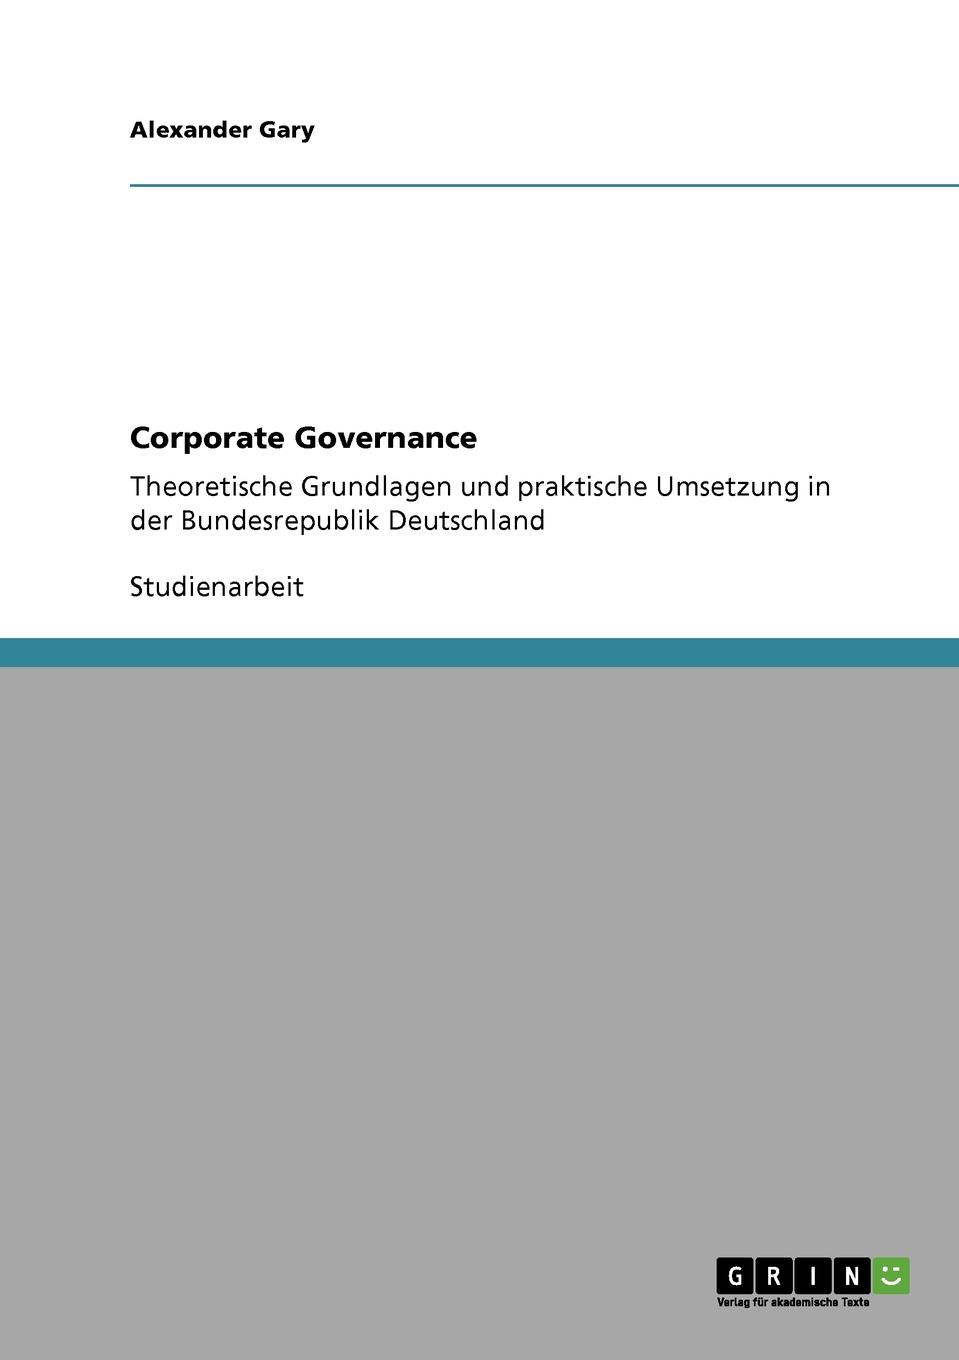 Alexander Gary Corporate Governance lena lindlar hohere unternehmenswerte durch corporate governance